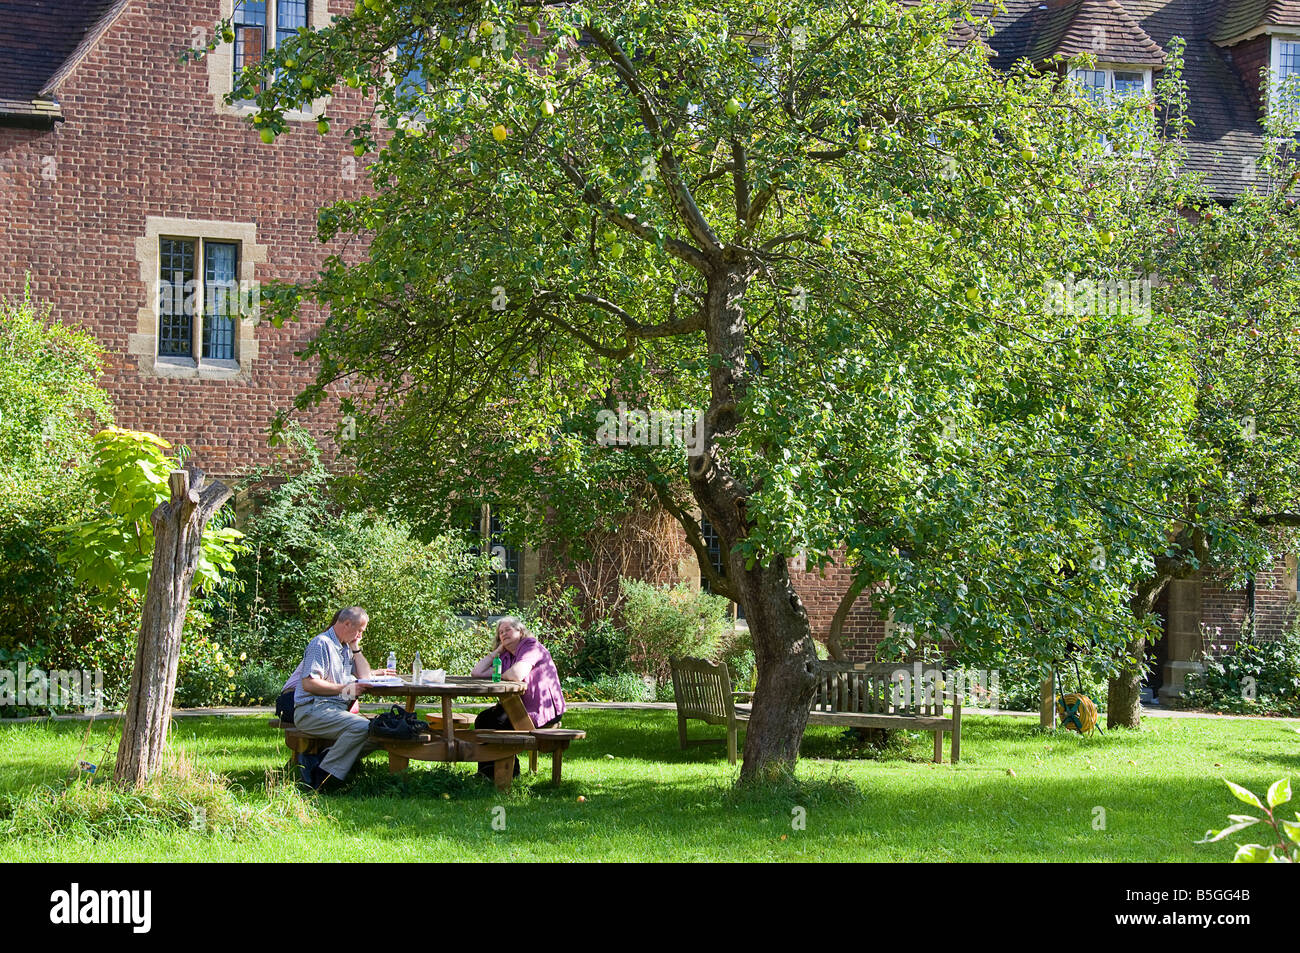 Three people relaxing in the shade of an apple tree in the grounds of Wescott House. - Stock Image